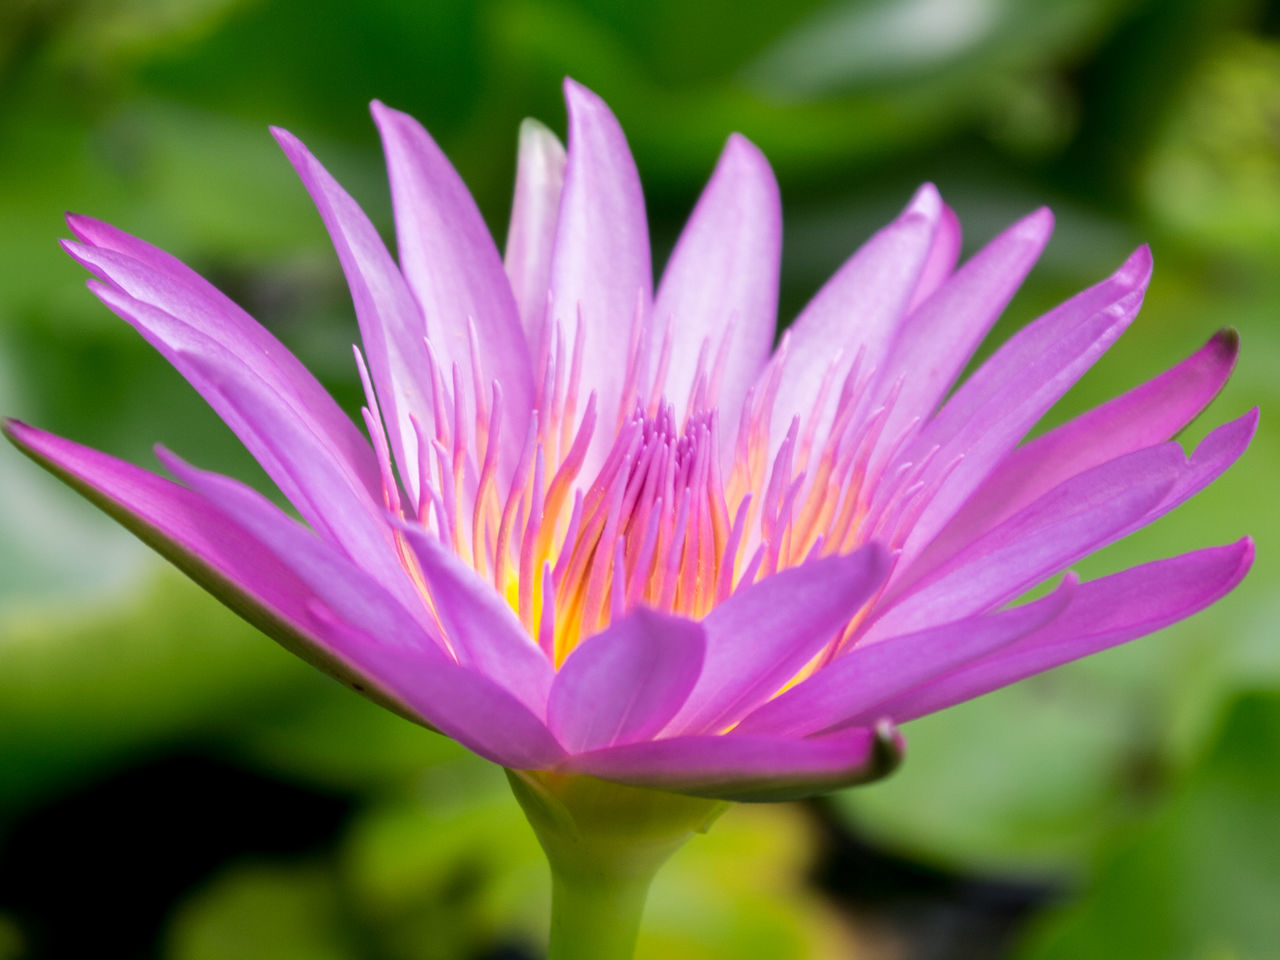 Close-up Blooming Purple Lotus in Pond Beauty In Nature Blooming Close-up Crocus Day Flower Flower Head Fragility Freshness Growth Lotus Love Nature No People Outdoors Petal Plant Purple